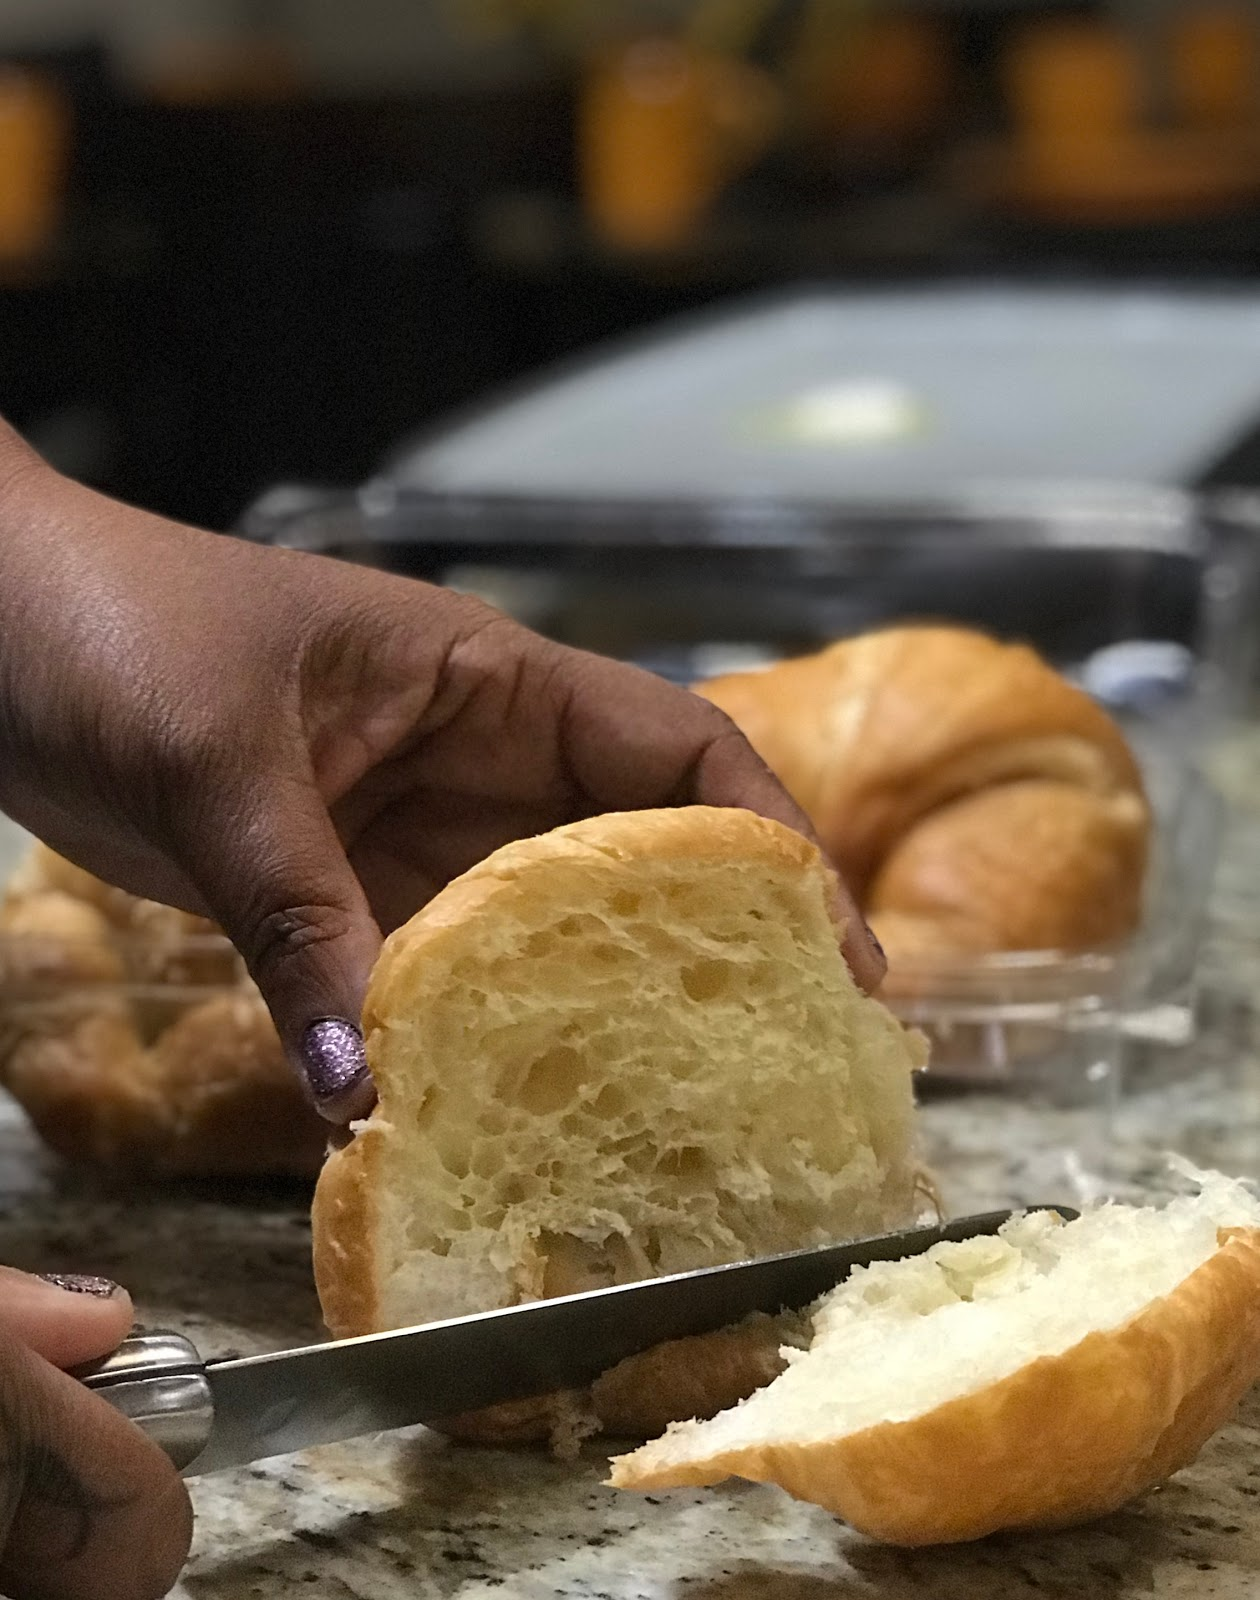 Tangie Bell cutting up croissant bread to make sweet fried pear croissant sandwich